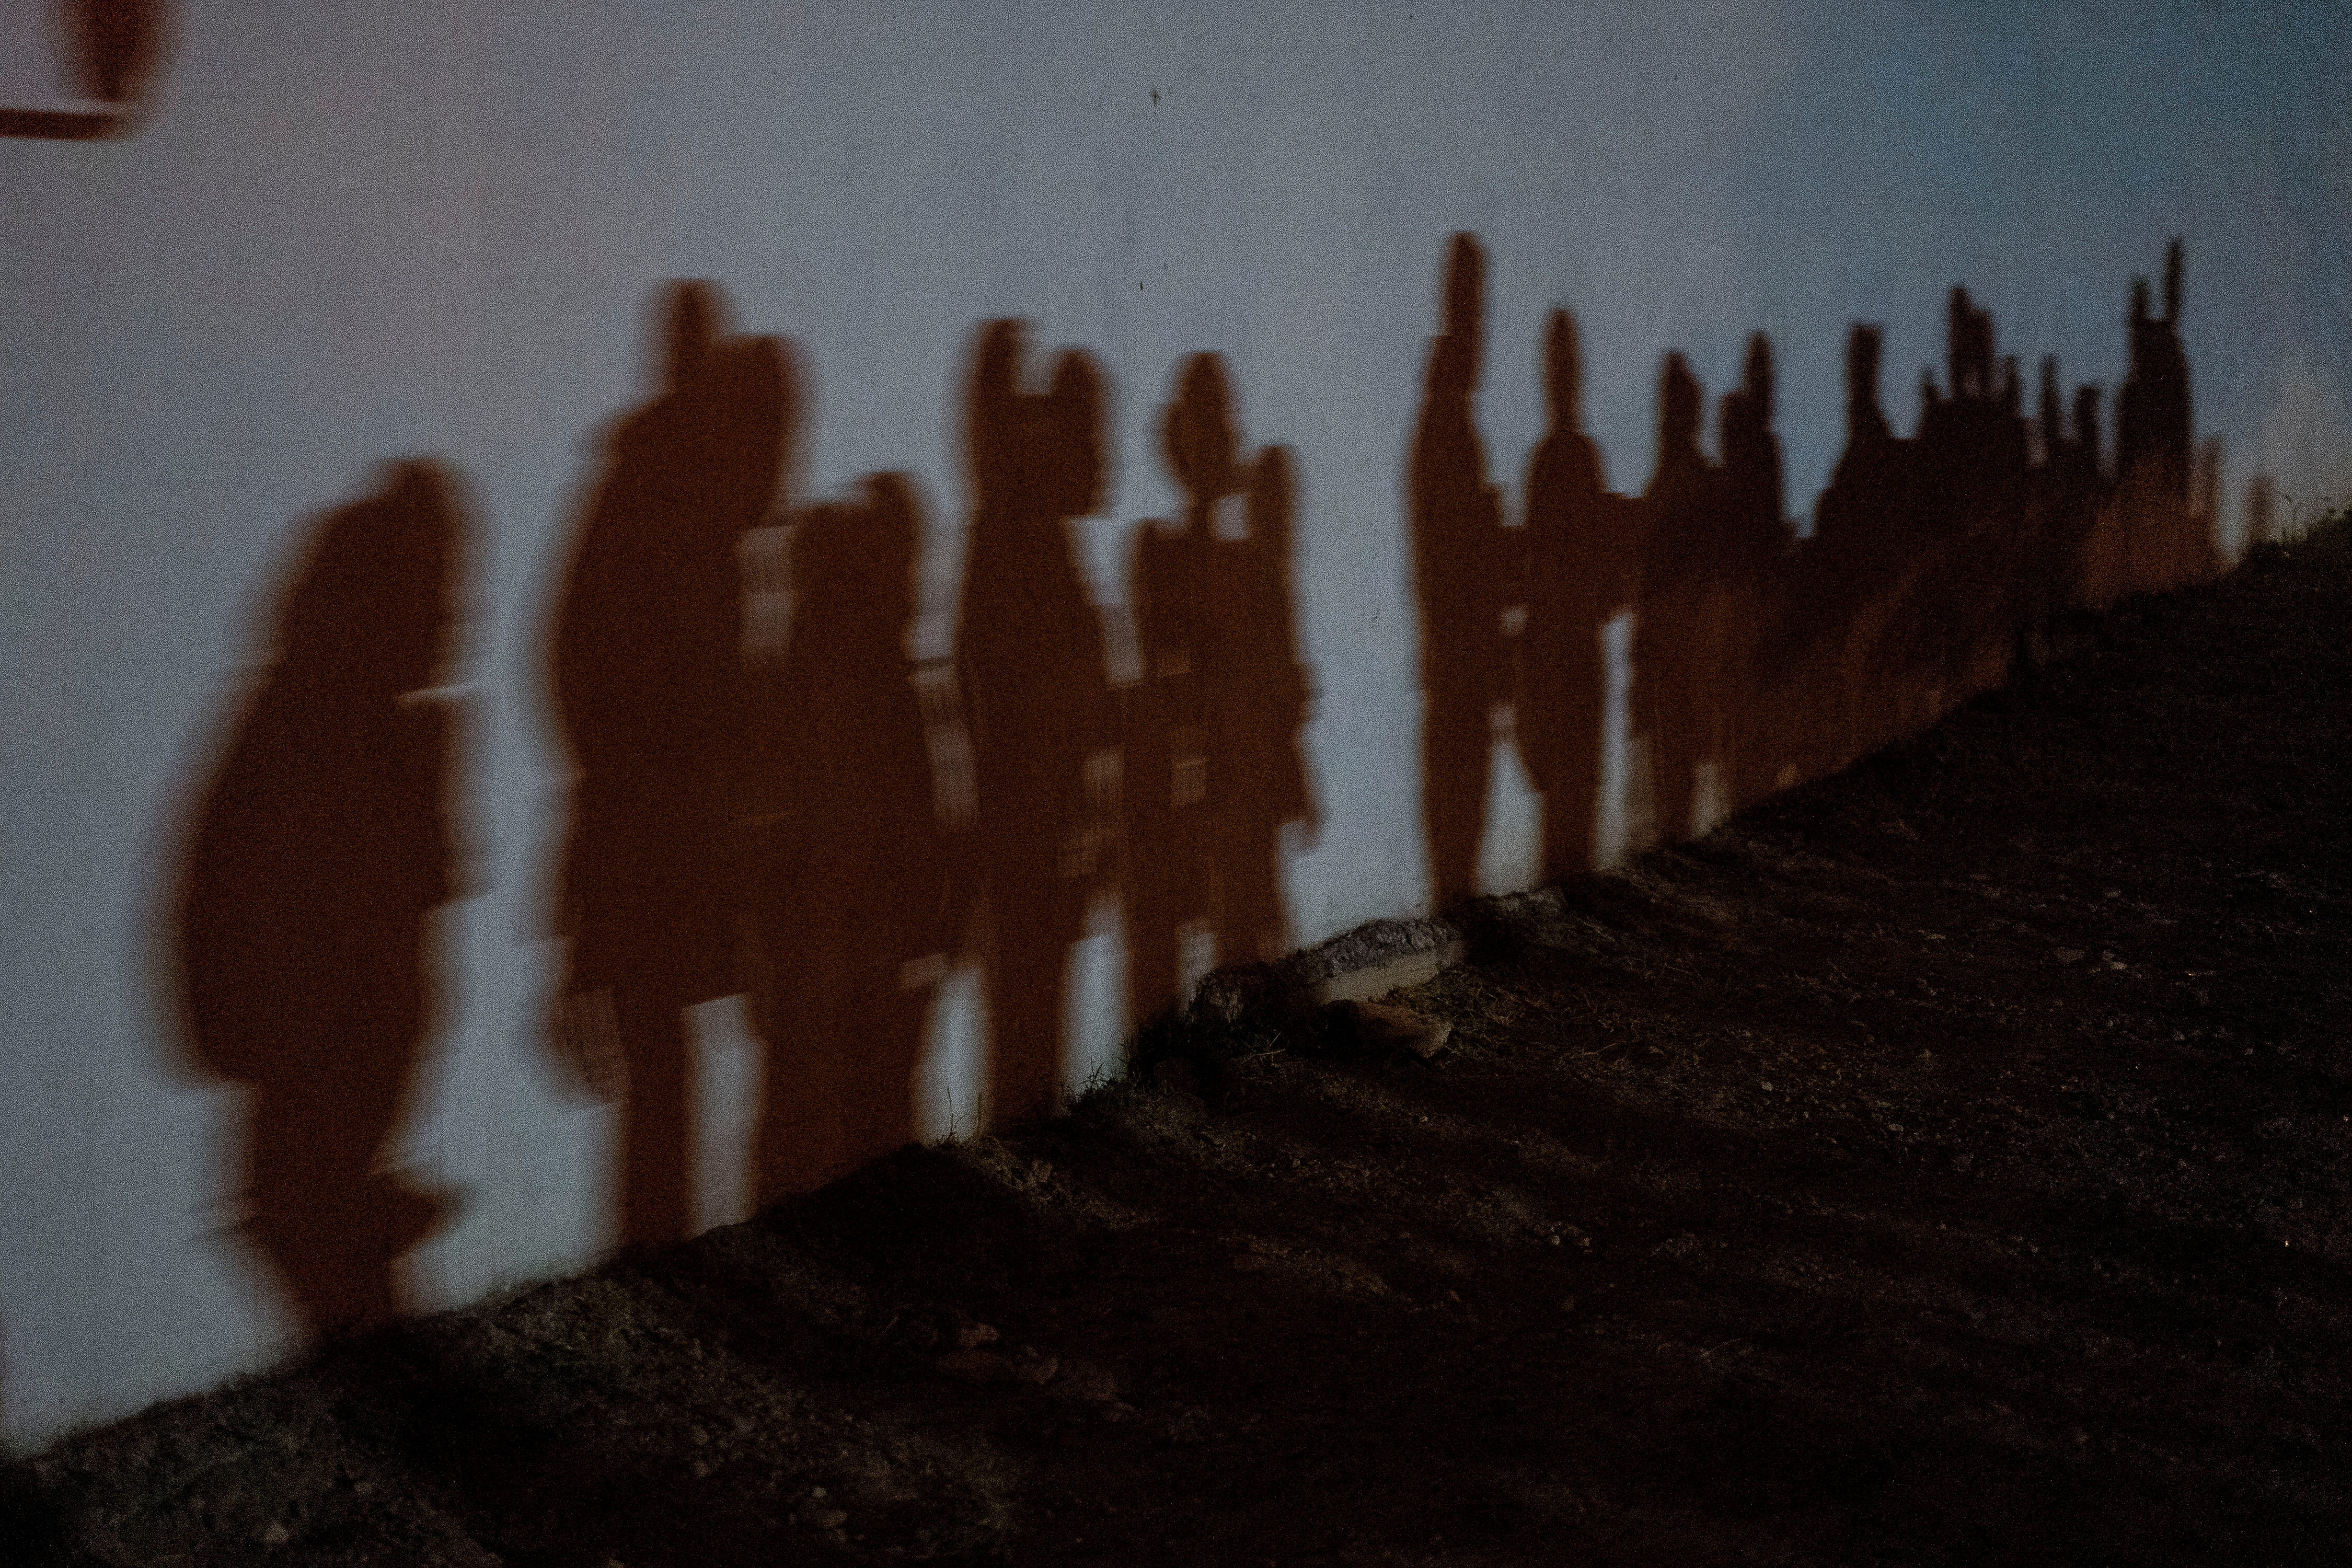 Asylum-seeking migrant families cast shadows on a wall as they form a queue to be processed by the U.S. Border Patrol after crossing the Rio Grande river into the United States from Mexico in Roma, Texas, U.S., August 12, 2021. REUTERS/Go Nakamura